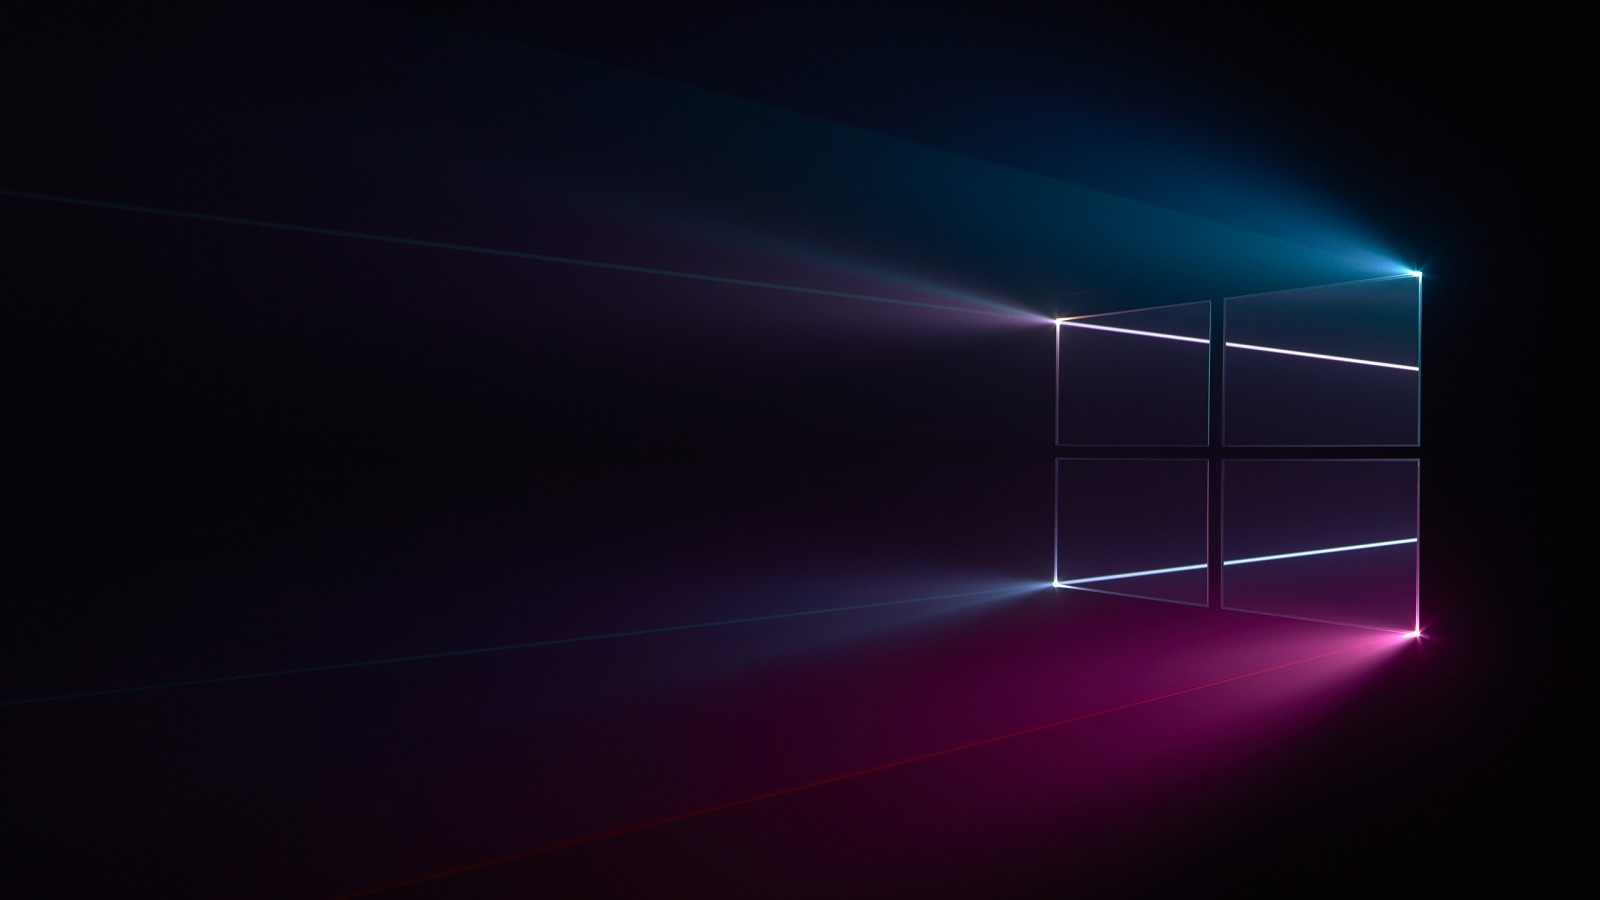 Win 10 Hd Wallpaper Posted By Samantha Sellers